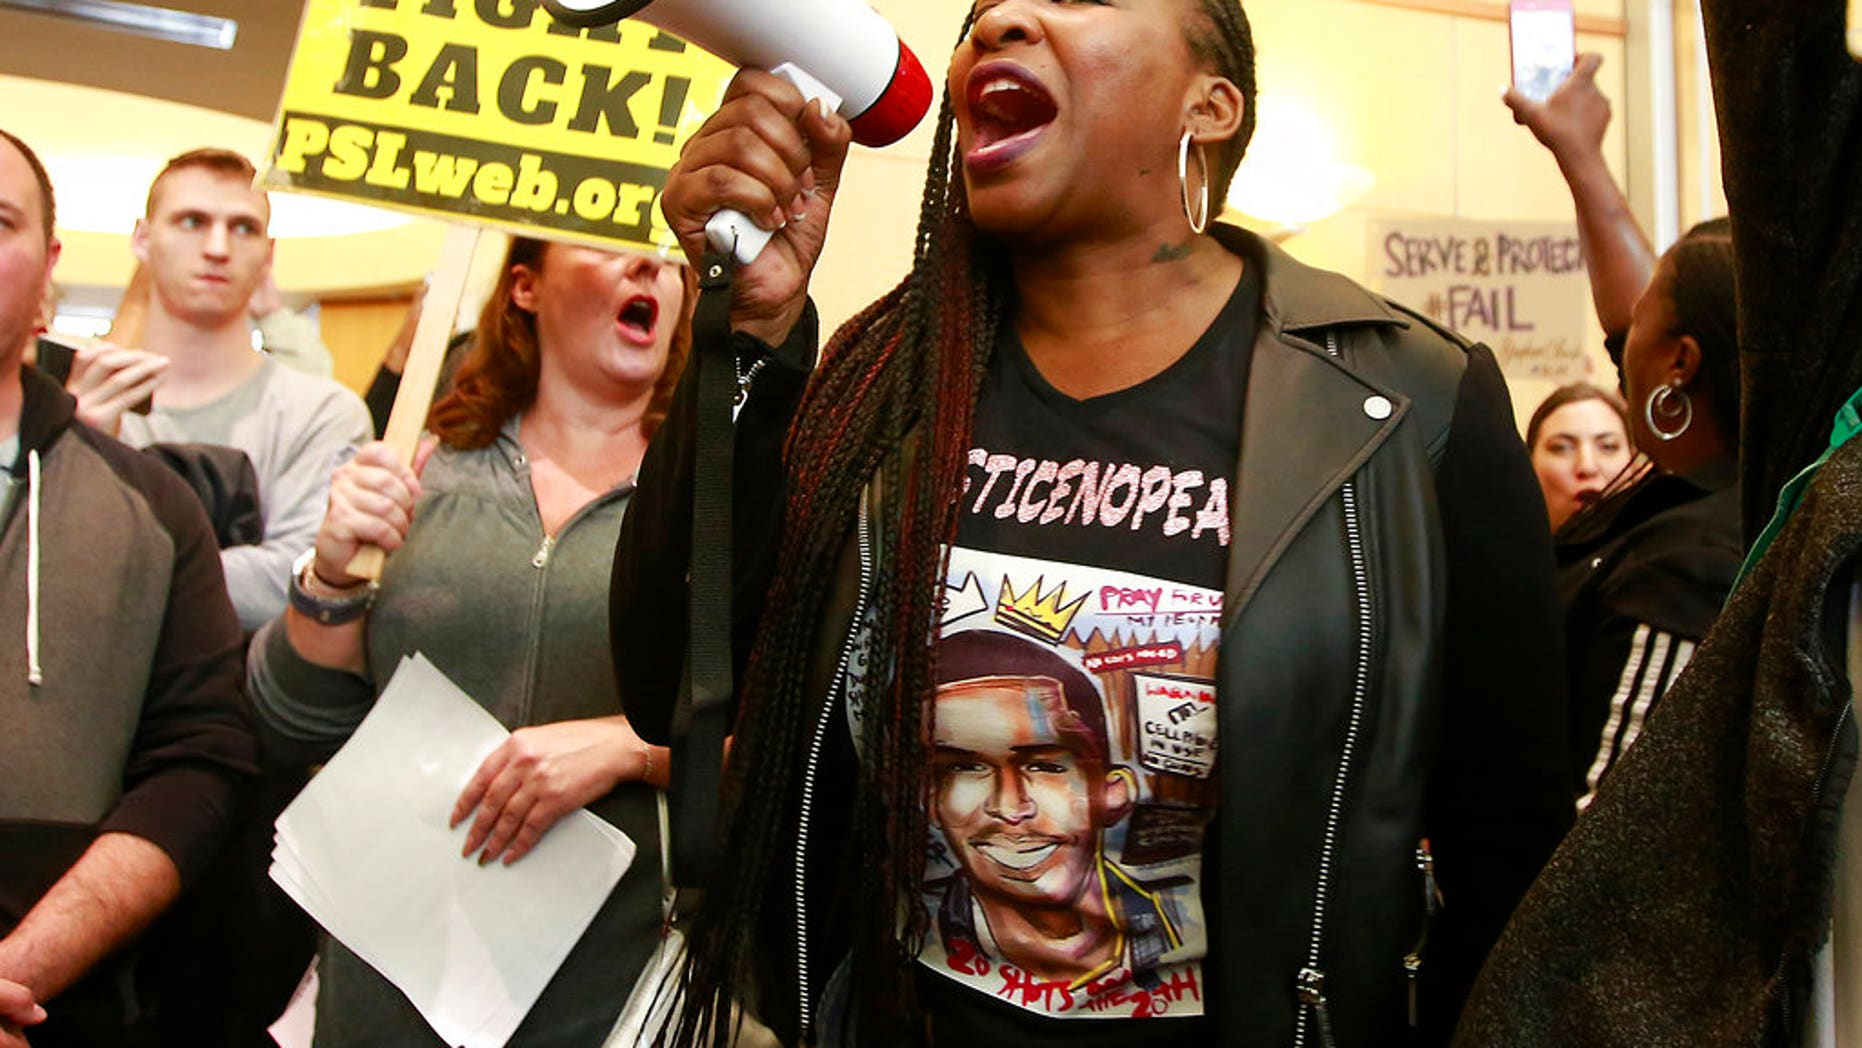 Veronica Curry and others protest the fatal shooting of Stephon Clark, outside City Hall in Sacramento, Calif., March 22, 2018.